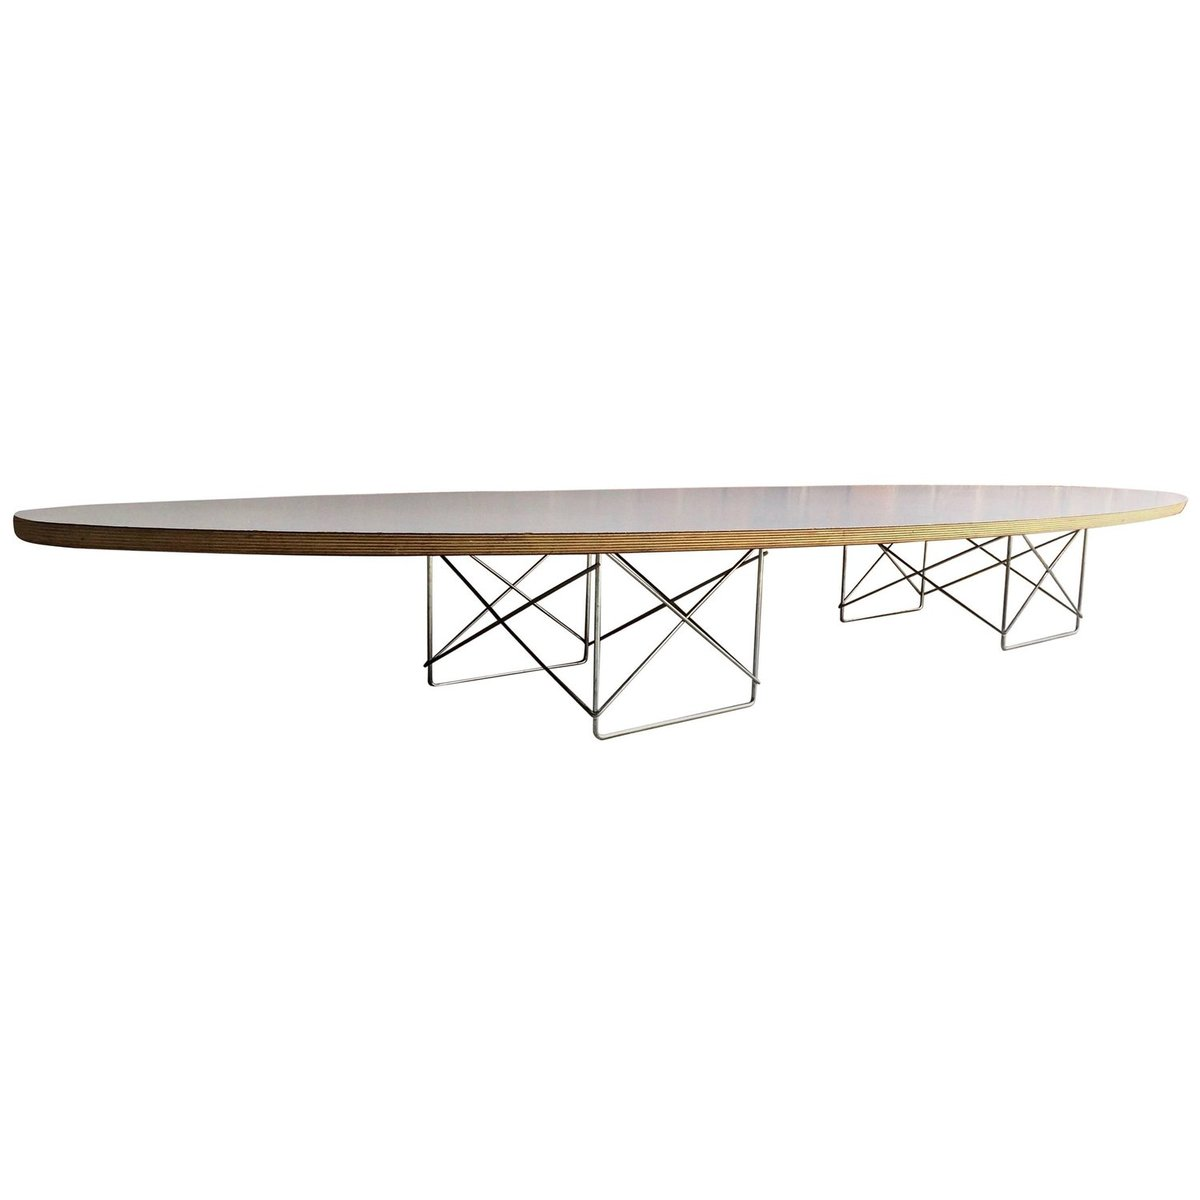 Exceptional Vintage Elliptical Coffee Table By Charles U0026 Ray Eames For Herman Miller,  1980s